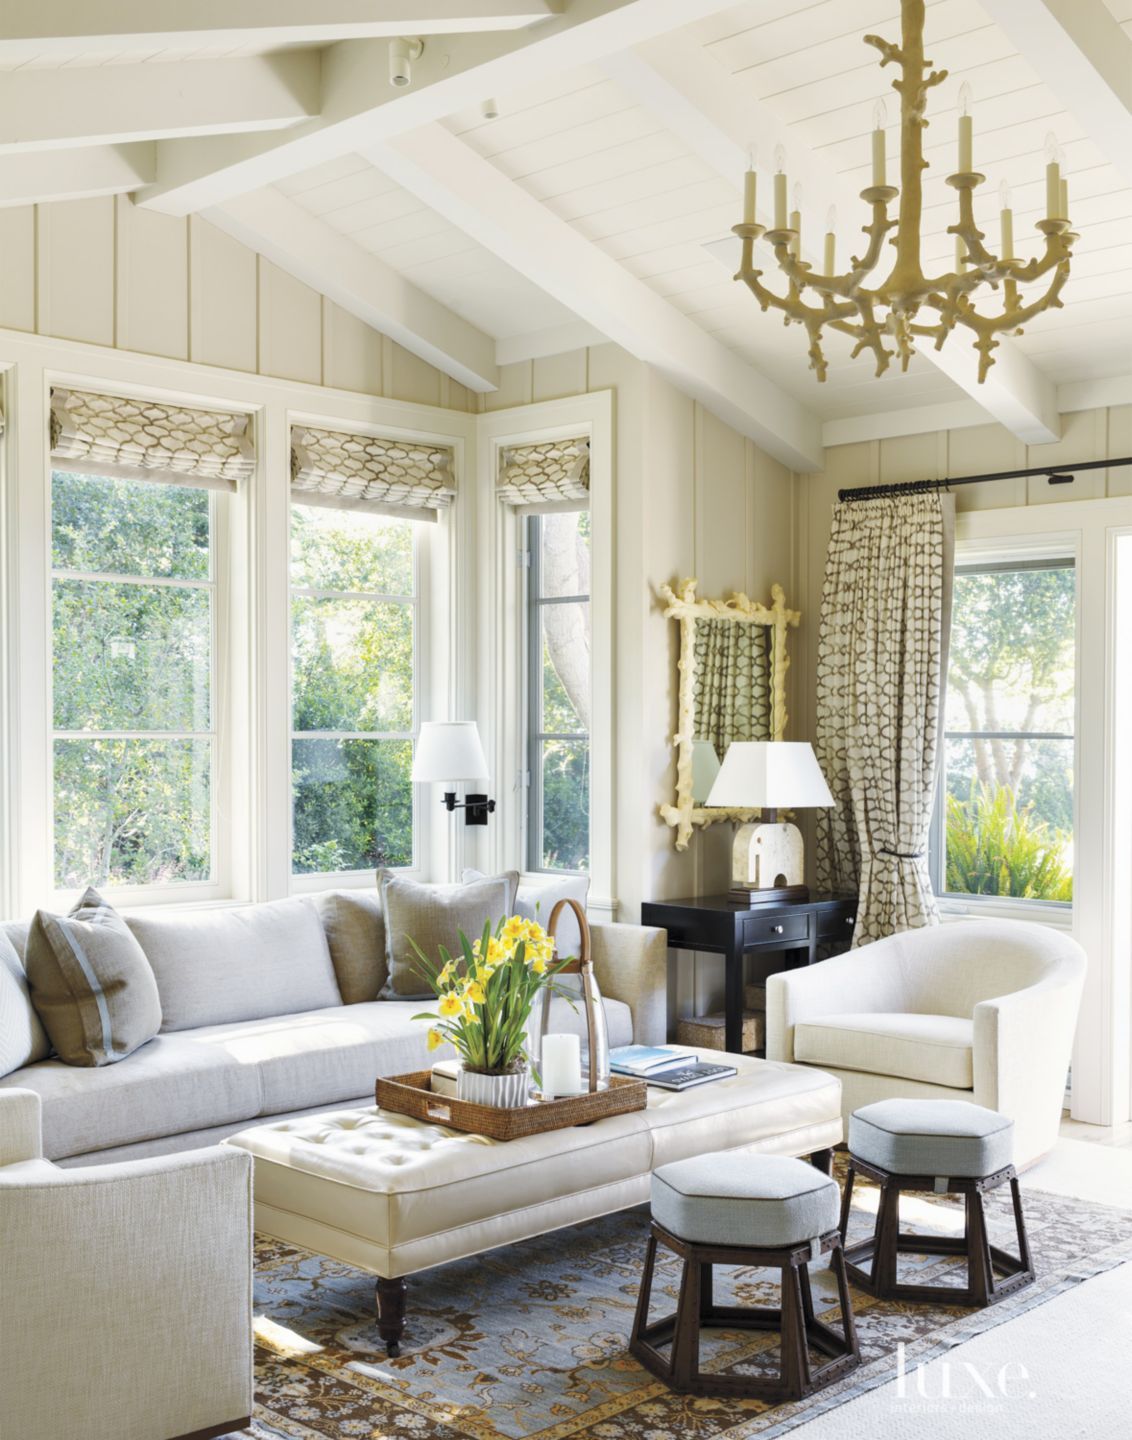 Contemporary Cream Living Room with Artistic Chandelier